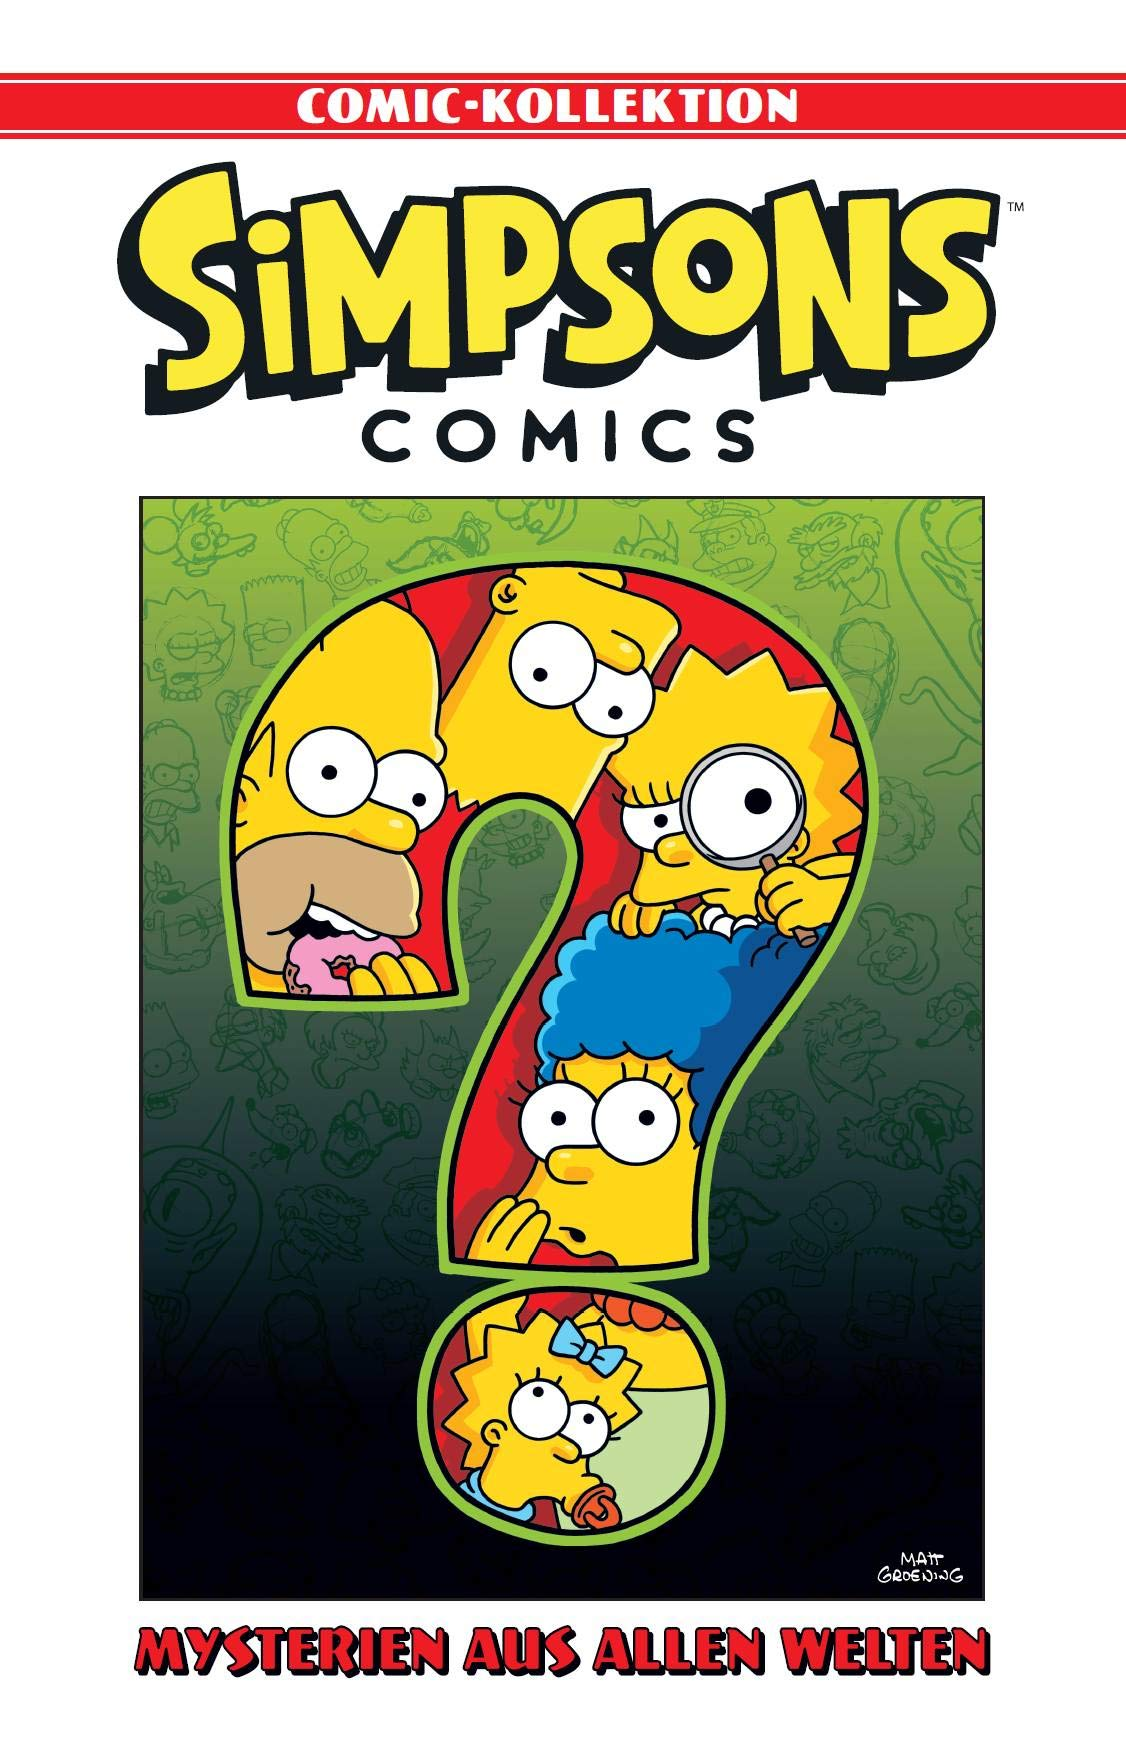 Die Simpsons - Simpsons Comic-Kollektion Nr. 42